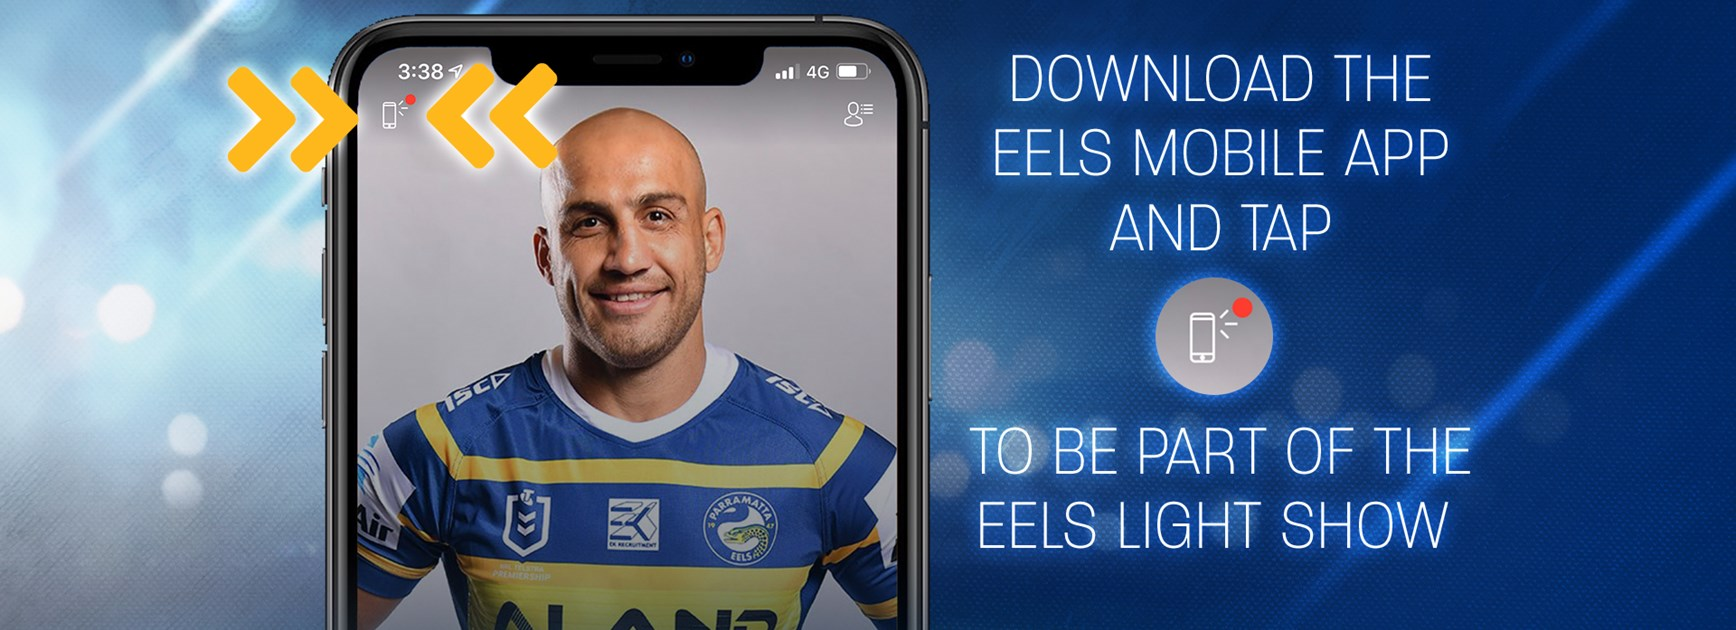 Be Part of the Eels Light Show